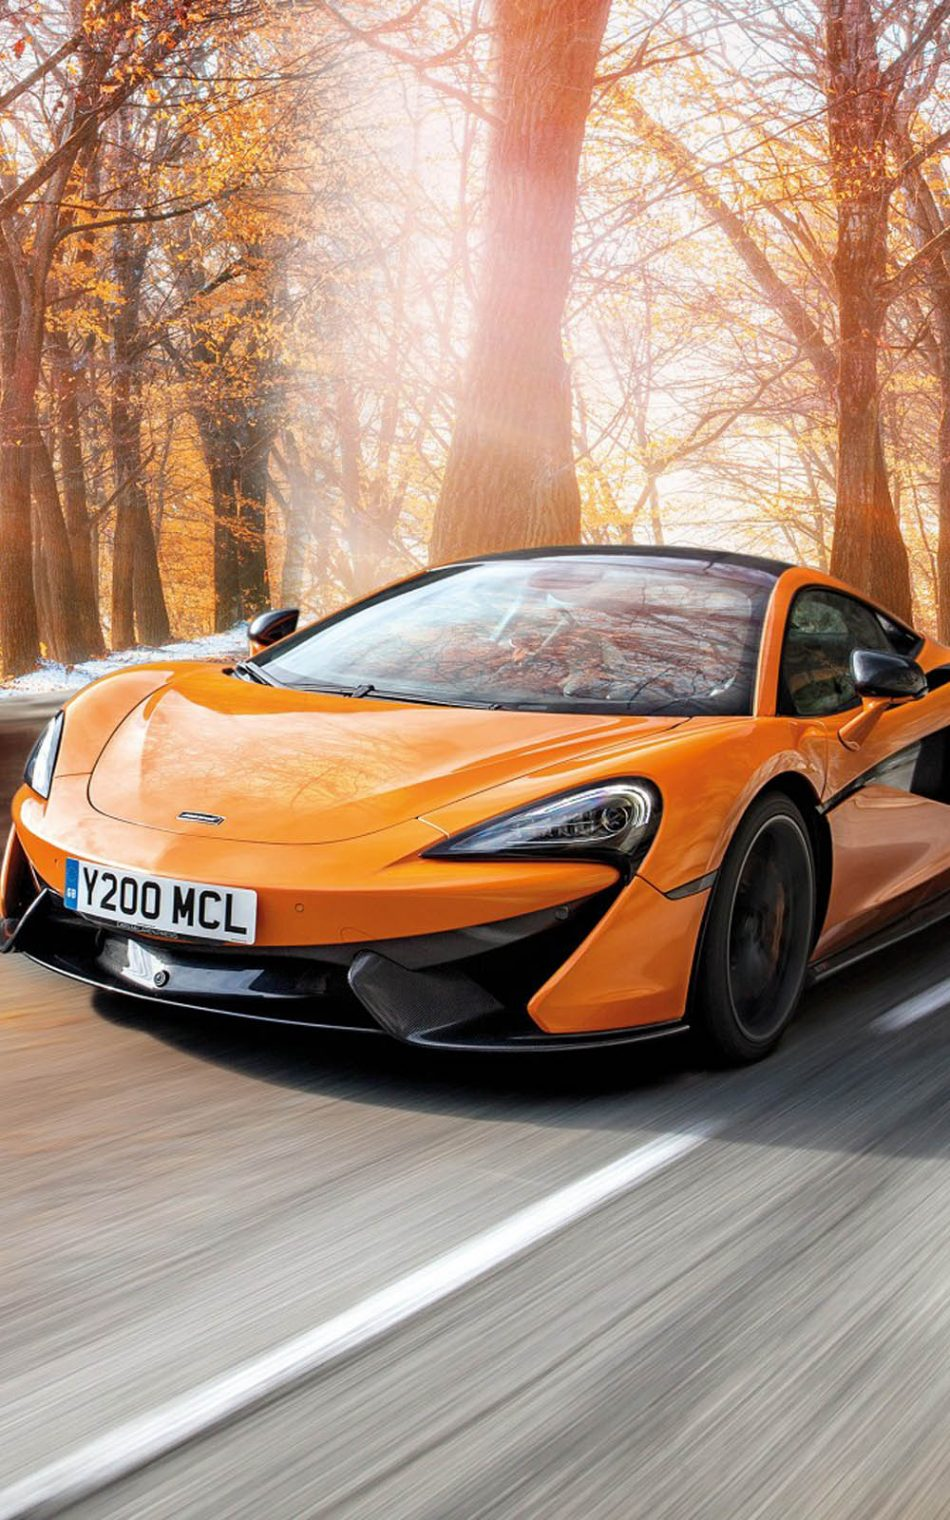 Mclaren 570S Pirelli MC Sottozero 3 HD Mobile Wallpaper